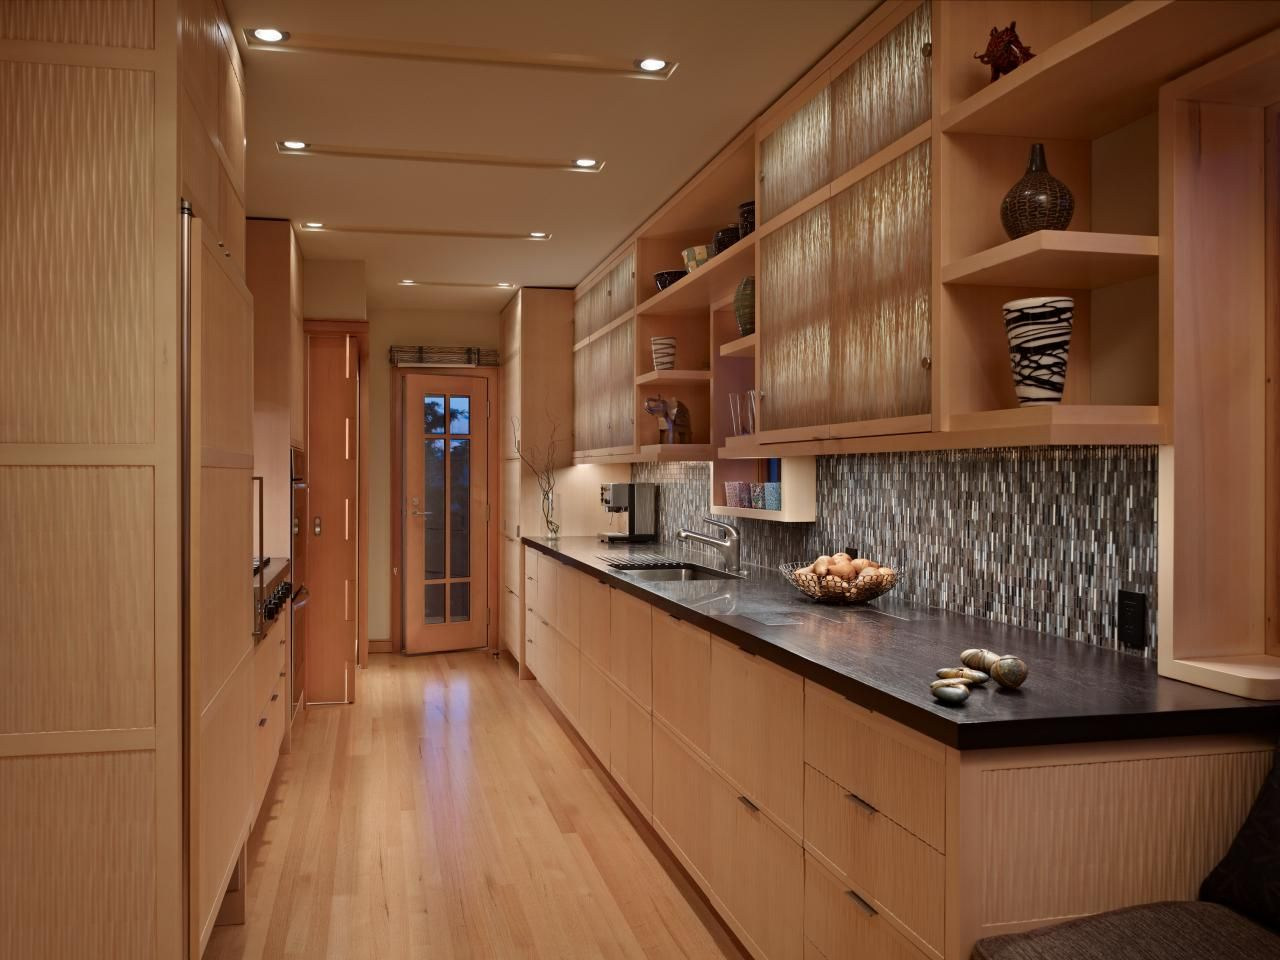 Contemporary Galley Kitchen Features Cedar Cabinets Kitchen Cabinets Pictures Alder Kitchen Cabinets Kitchen Style